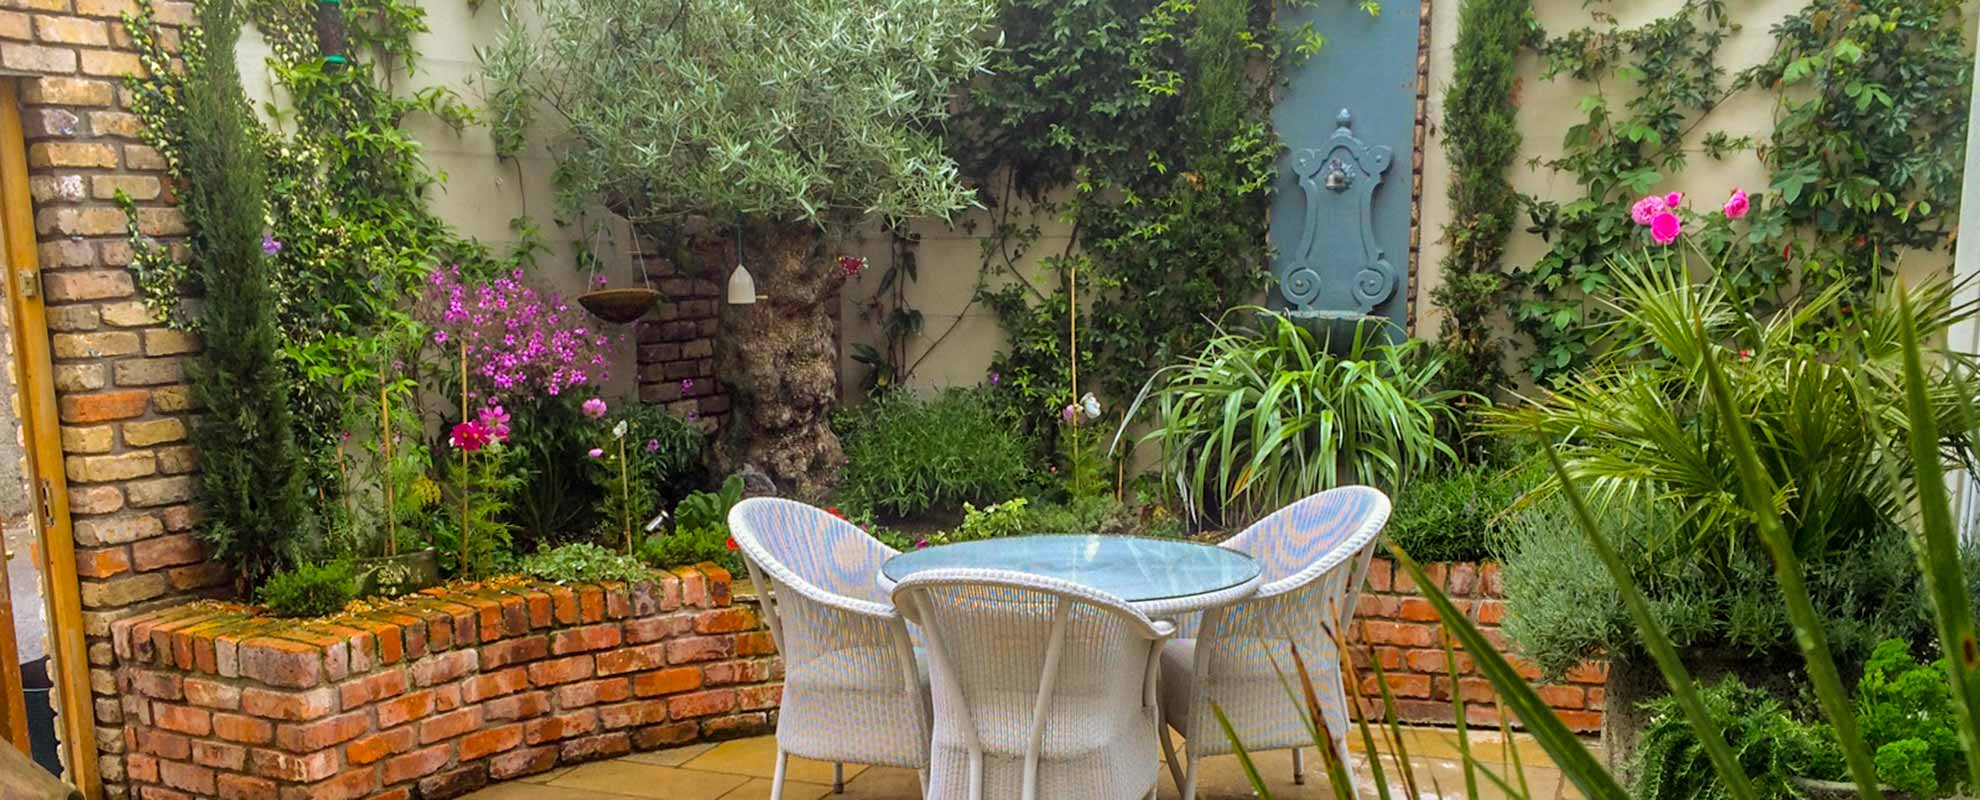 Gardeners and landscapers in ranelagh and south dublin